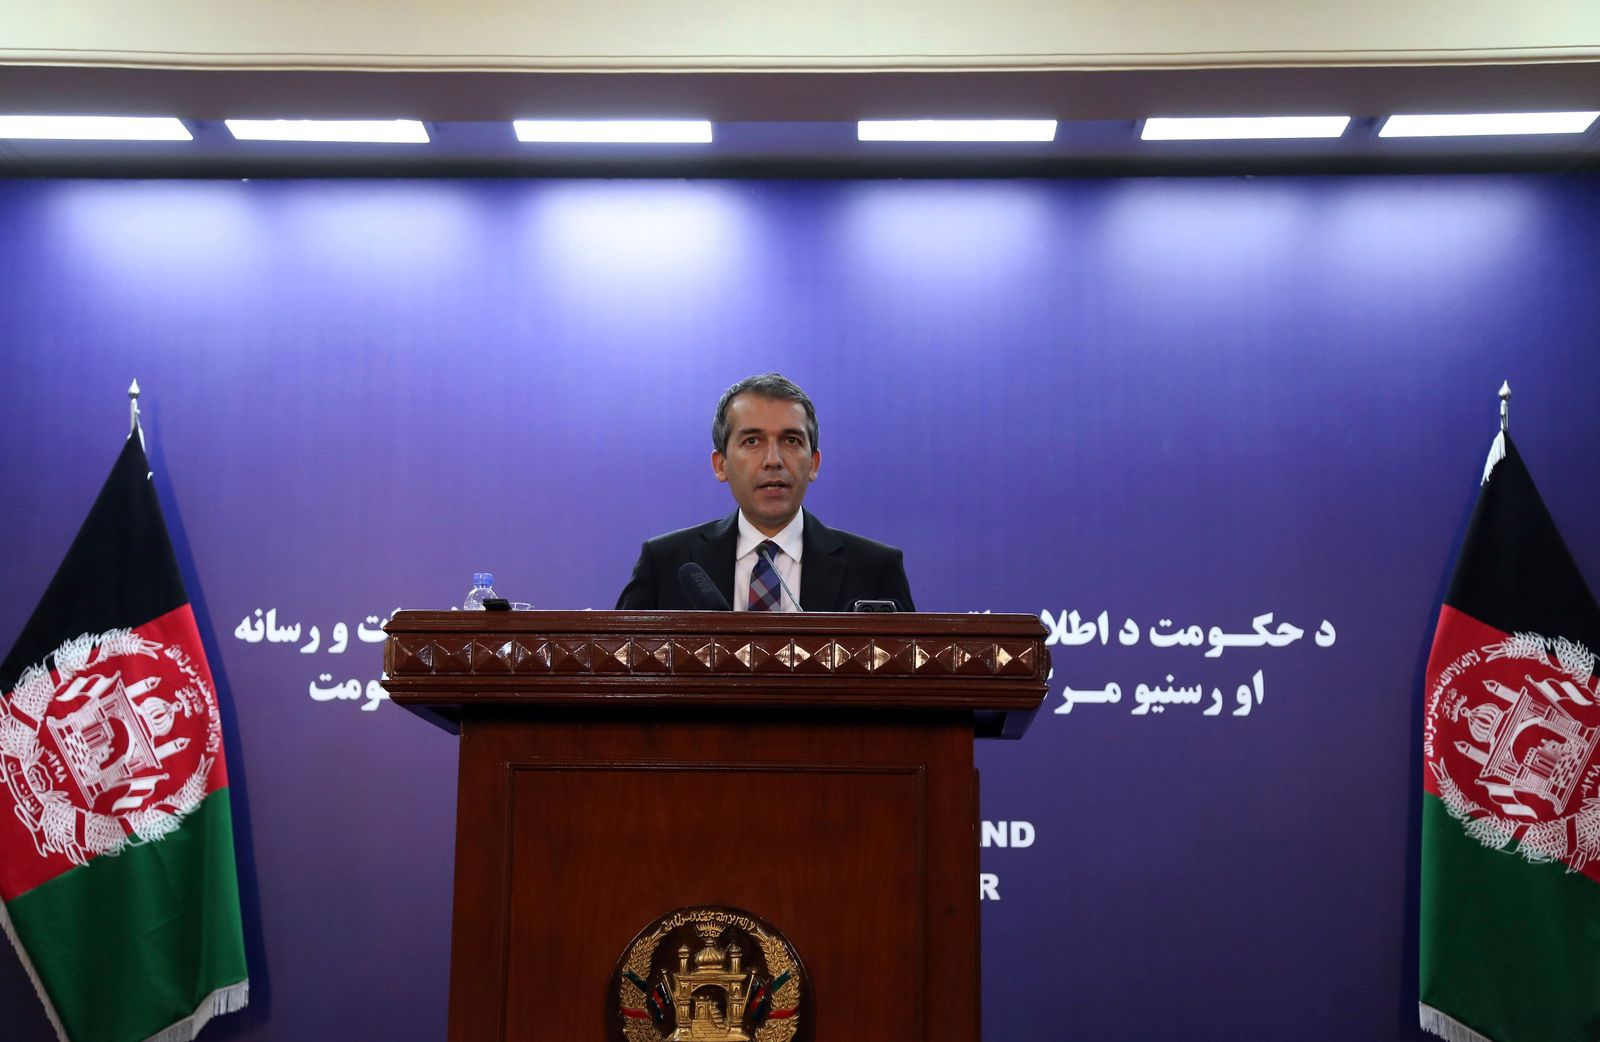 Afghan Presidential Spokesman Sediq Seddqi gives a press conference in Kabul, Afghanistan, Sunday, Sept. 8, 2019. (AP Photo/Rahmat Gul)